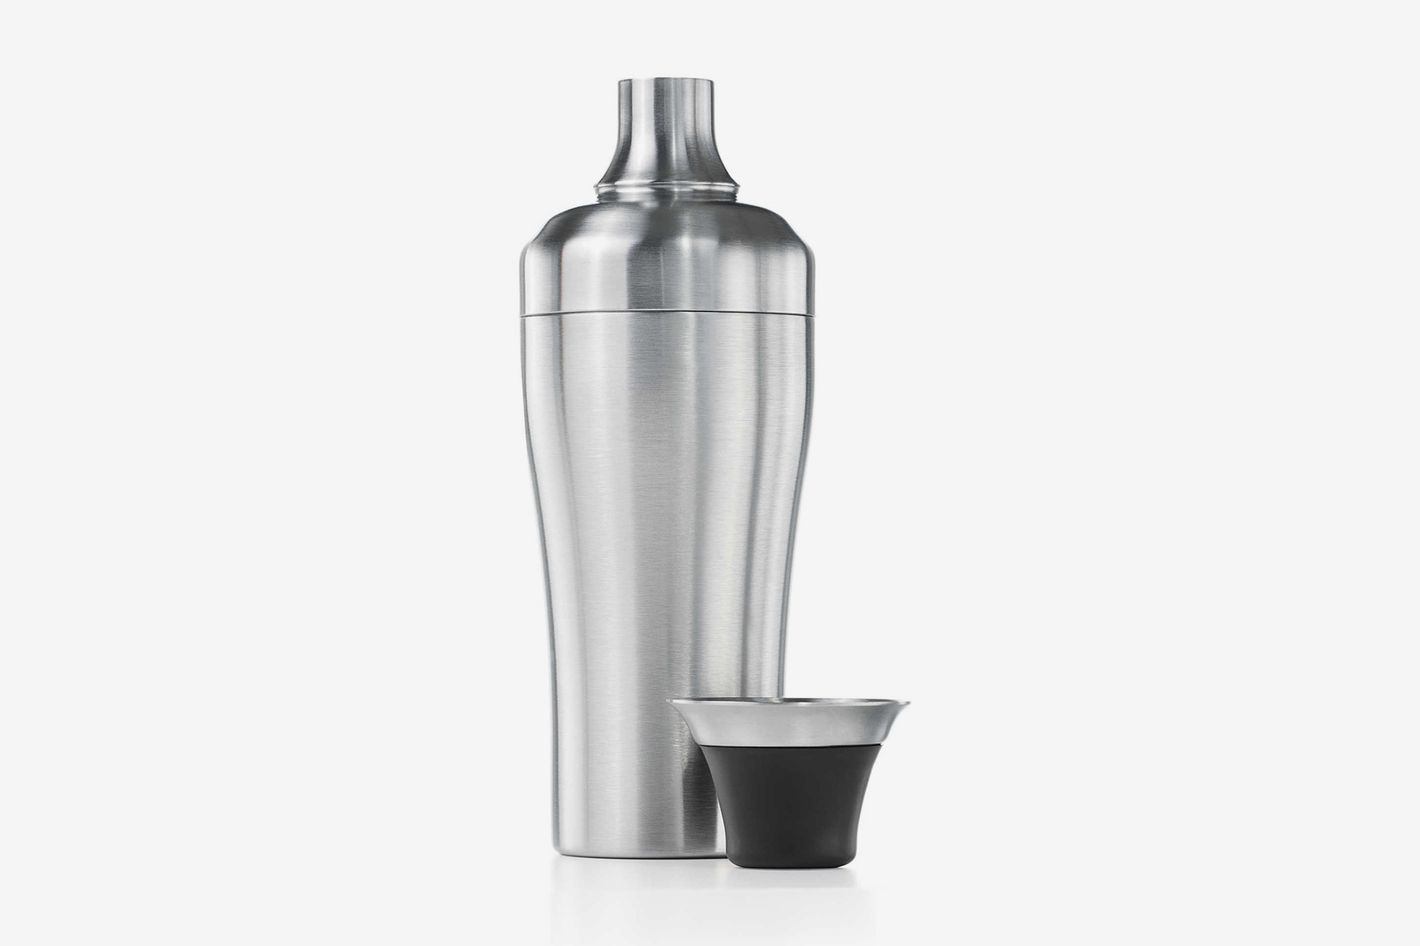 OXO SteeL 16-Ounce Cocktail Shaker